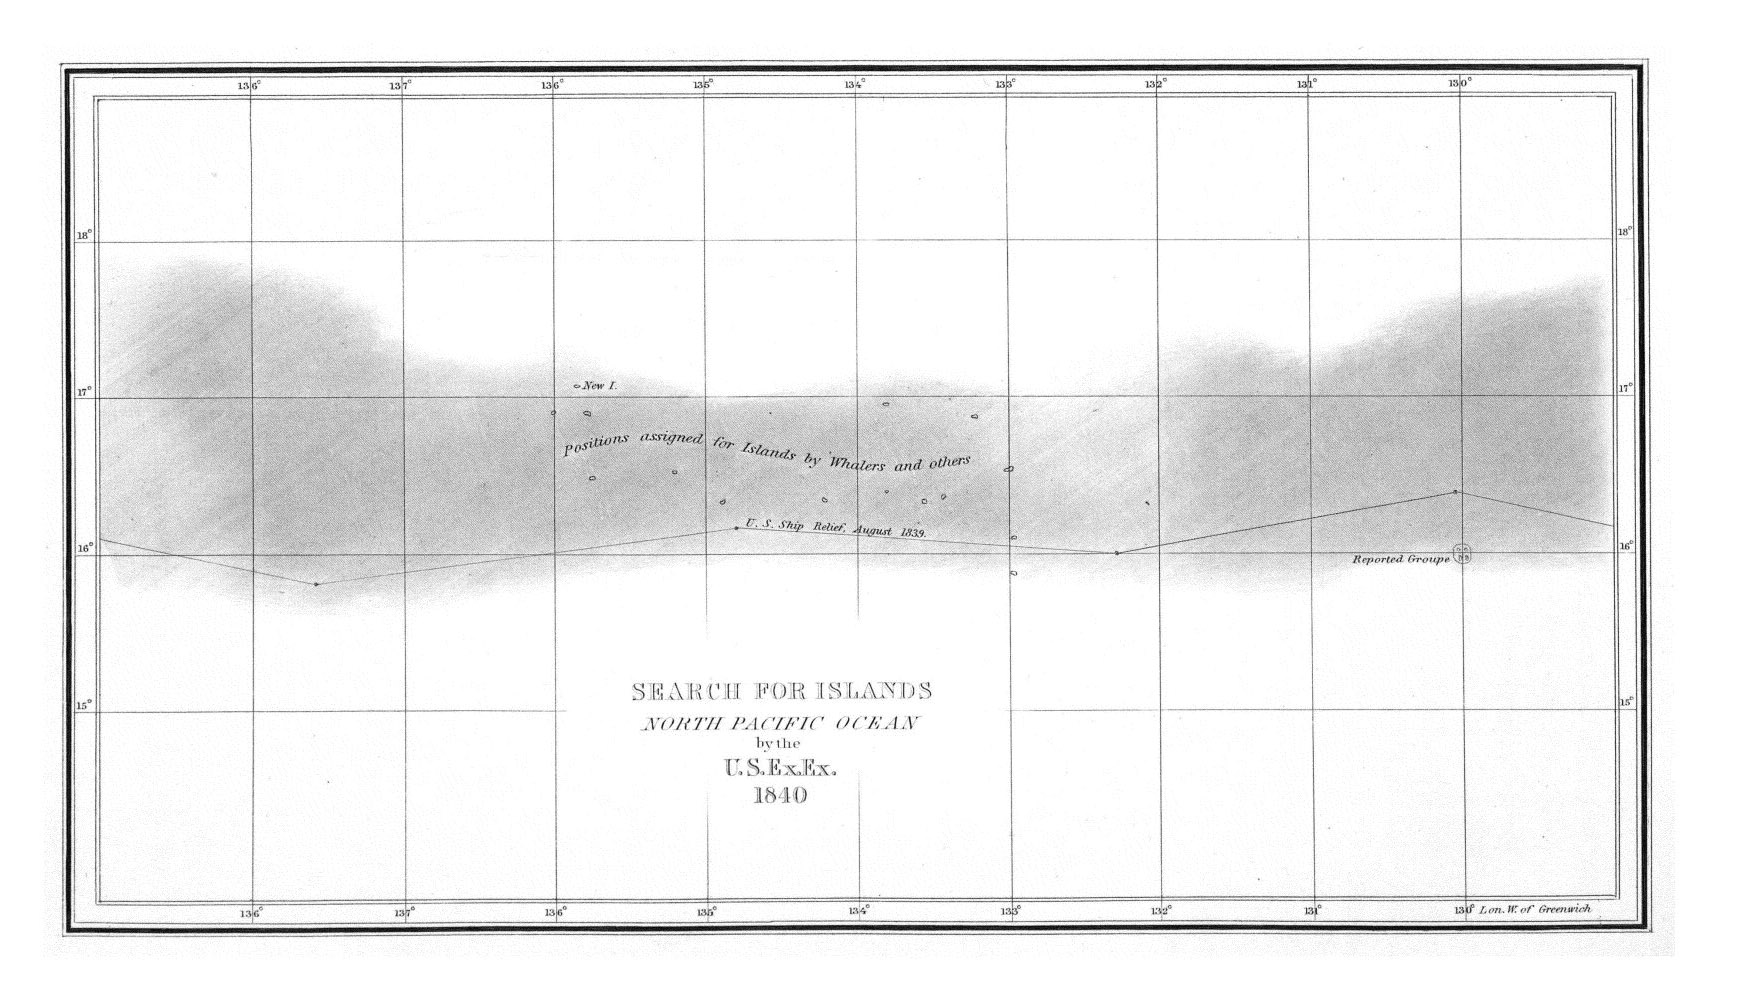 Search for Islands, North Pacific Ocean,  Image number:Sil19-34-287